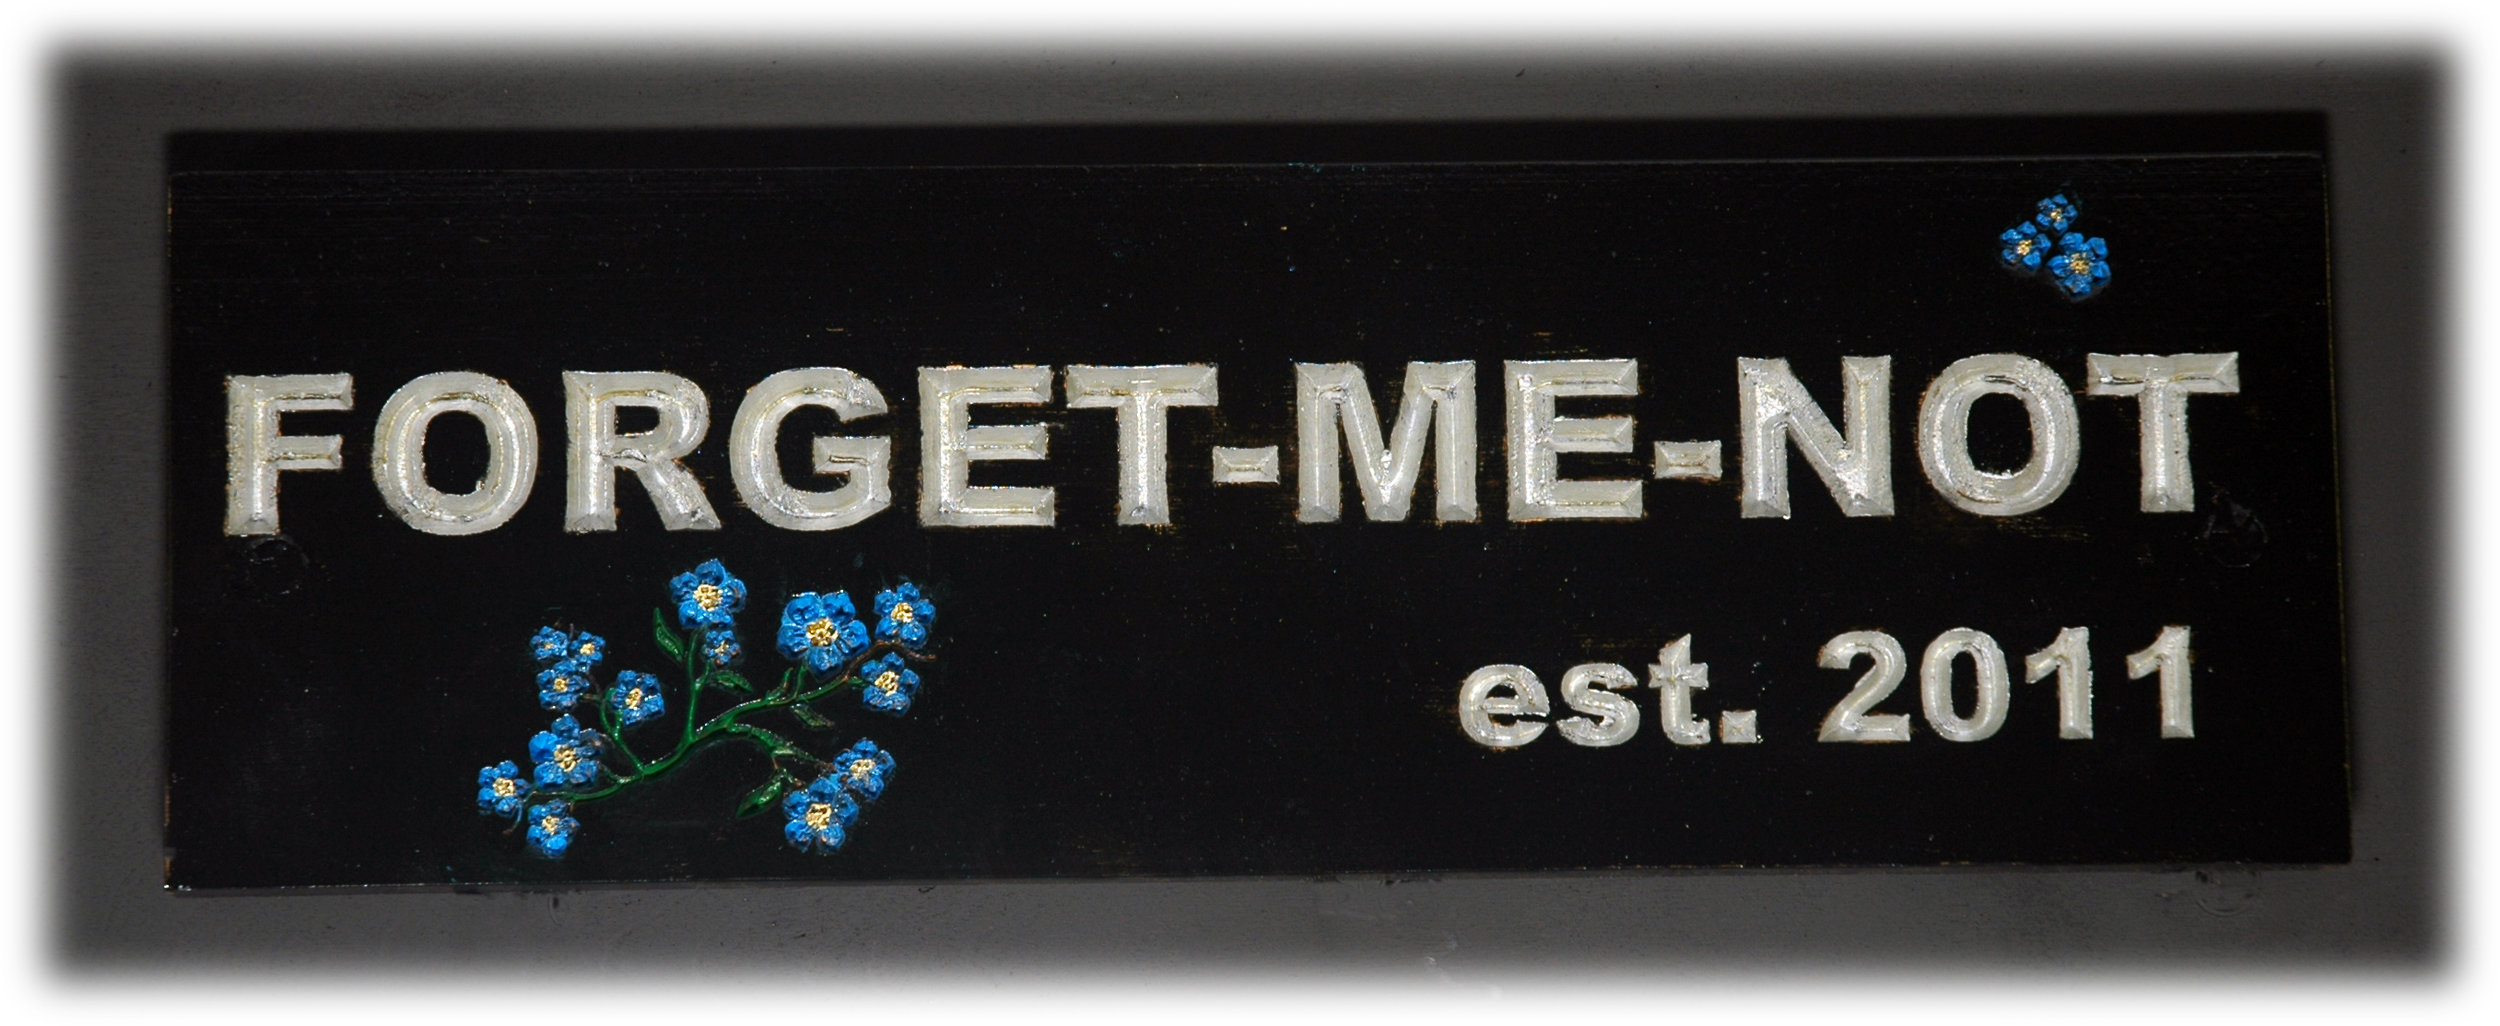 Forget me not 01 02.jpg